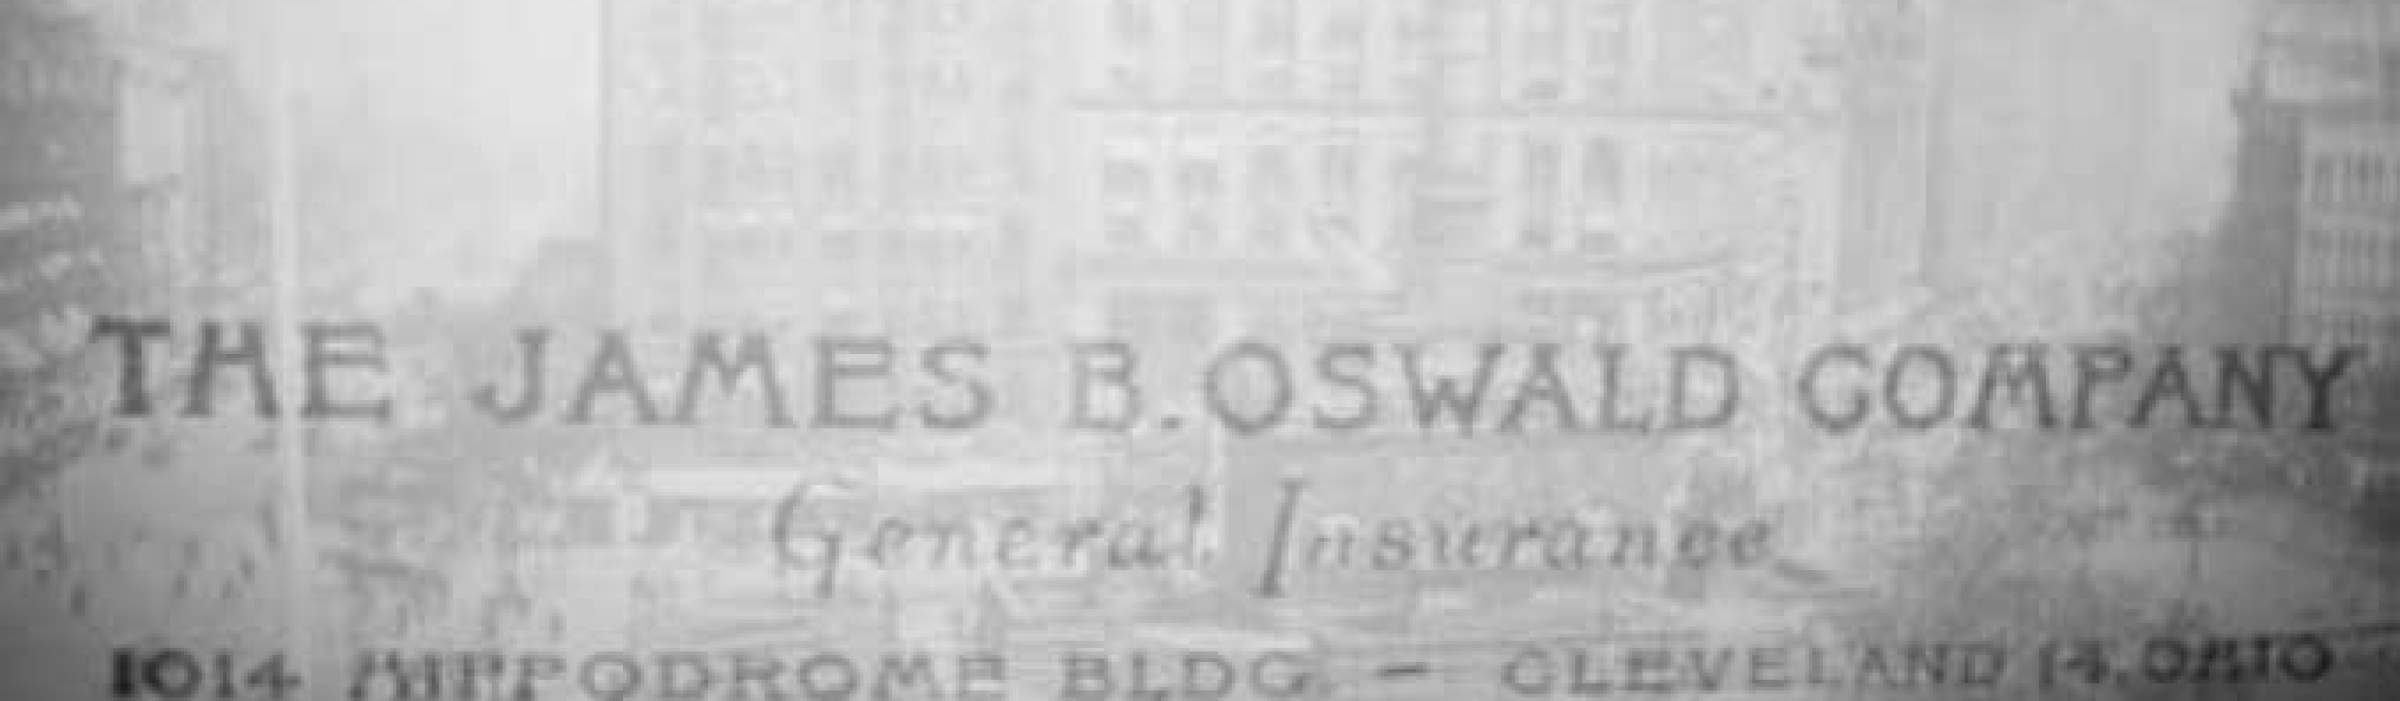 James B Oswald Historical logo